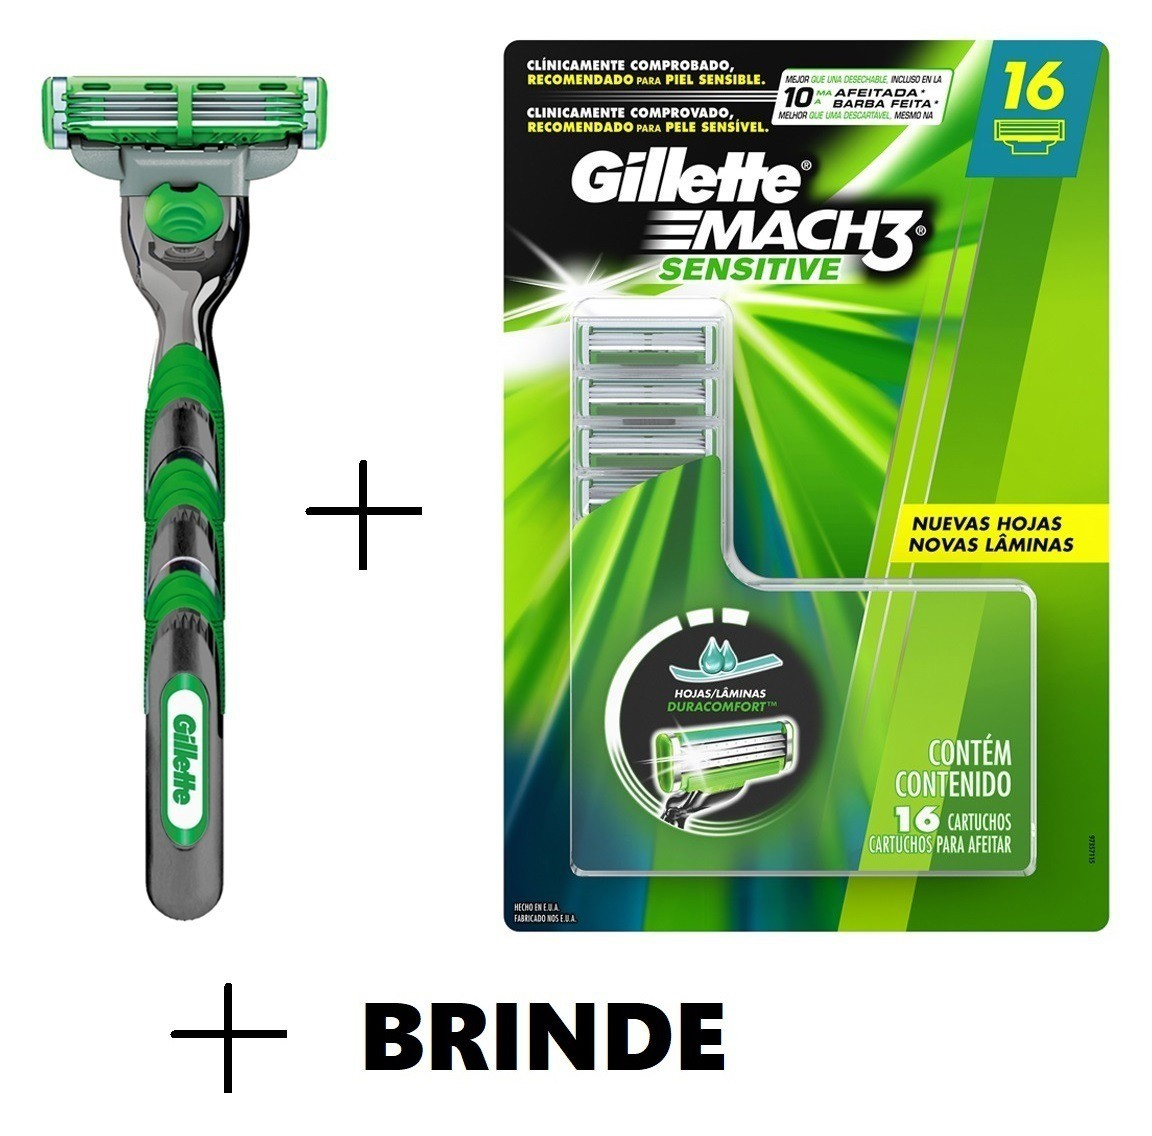 Kit Carga Gillette Mach3 Sensitive com 12 unidades + Brinde